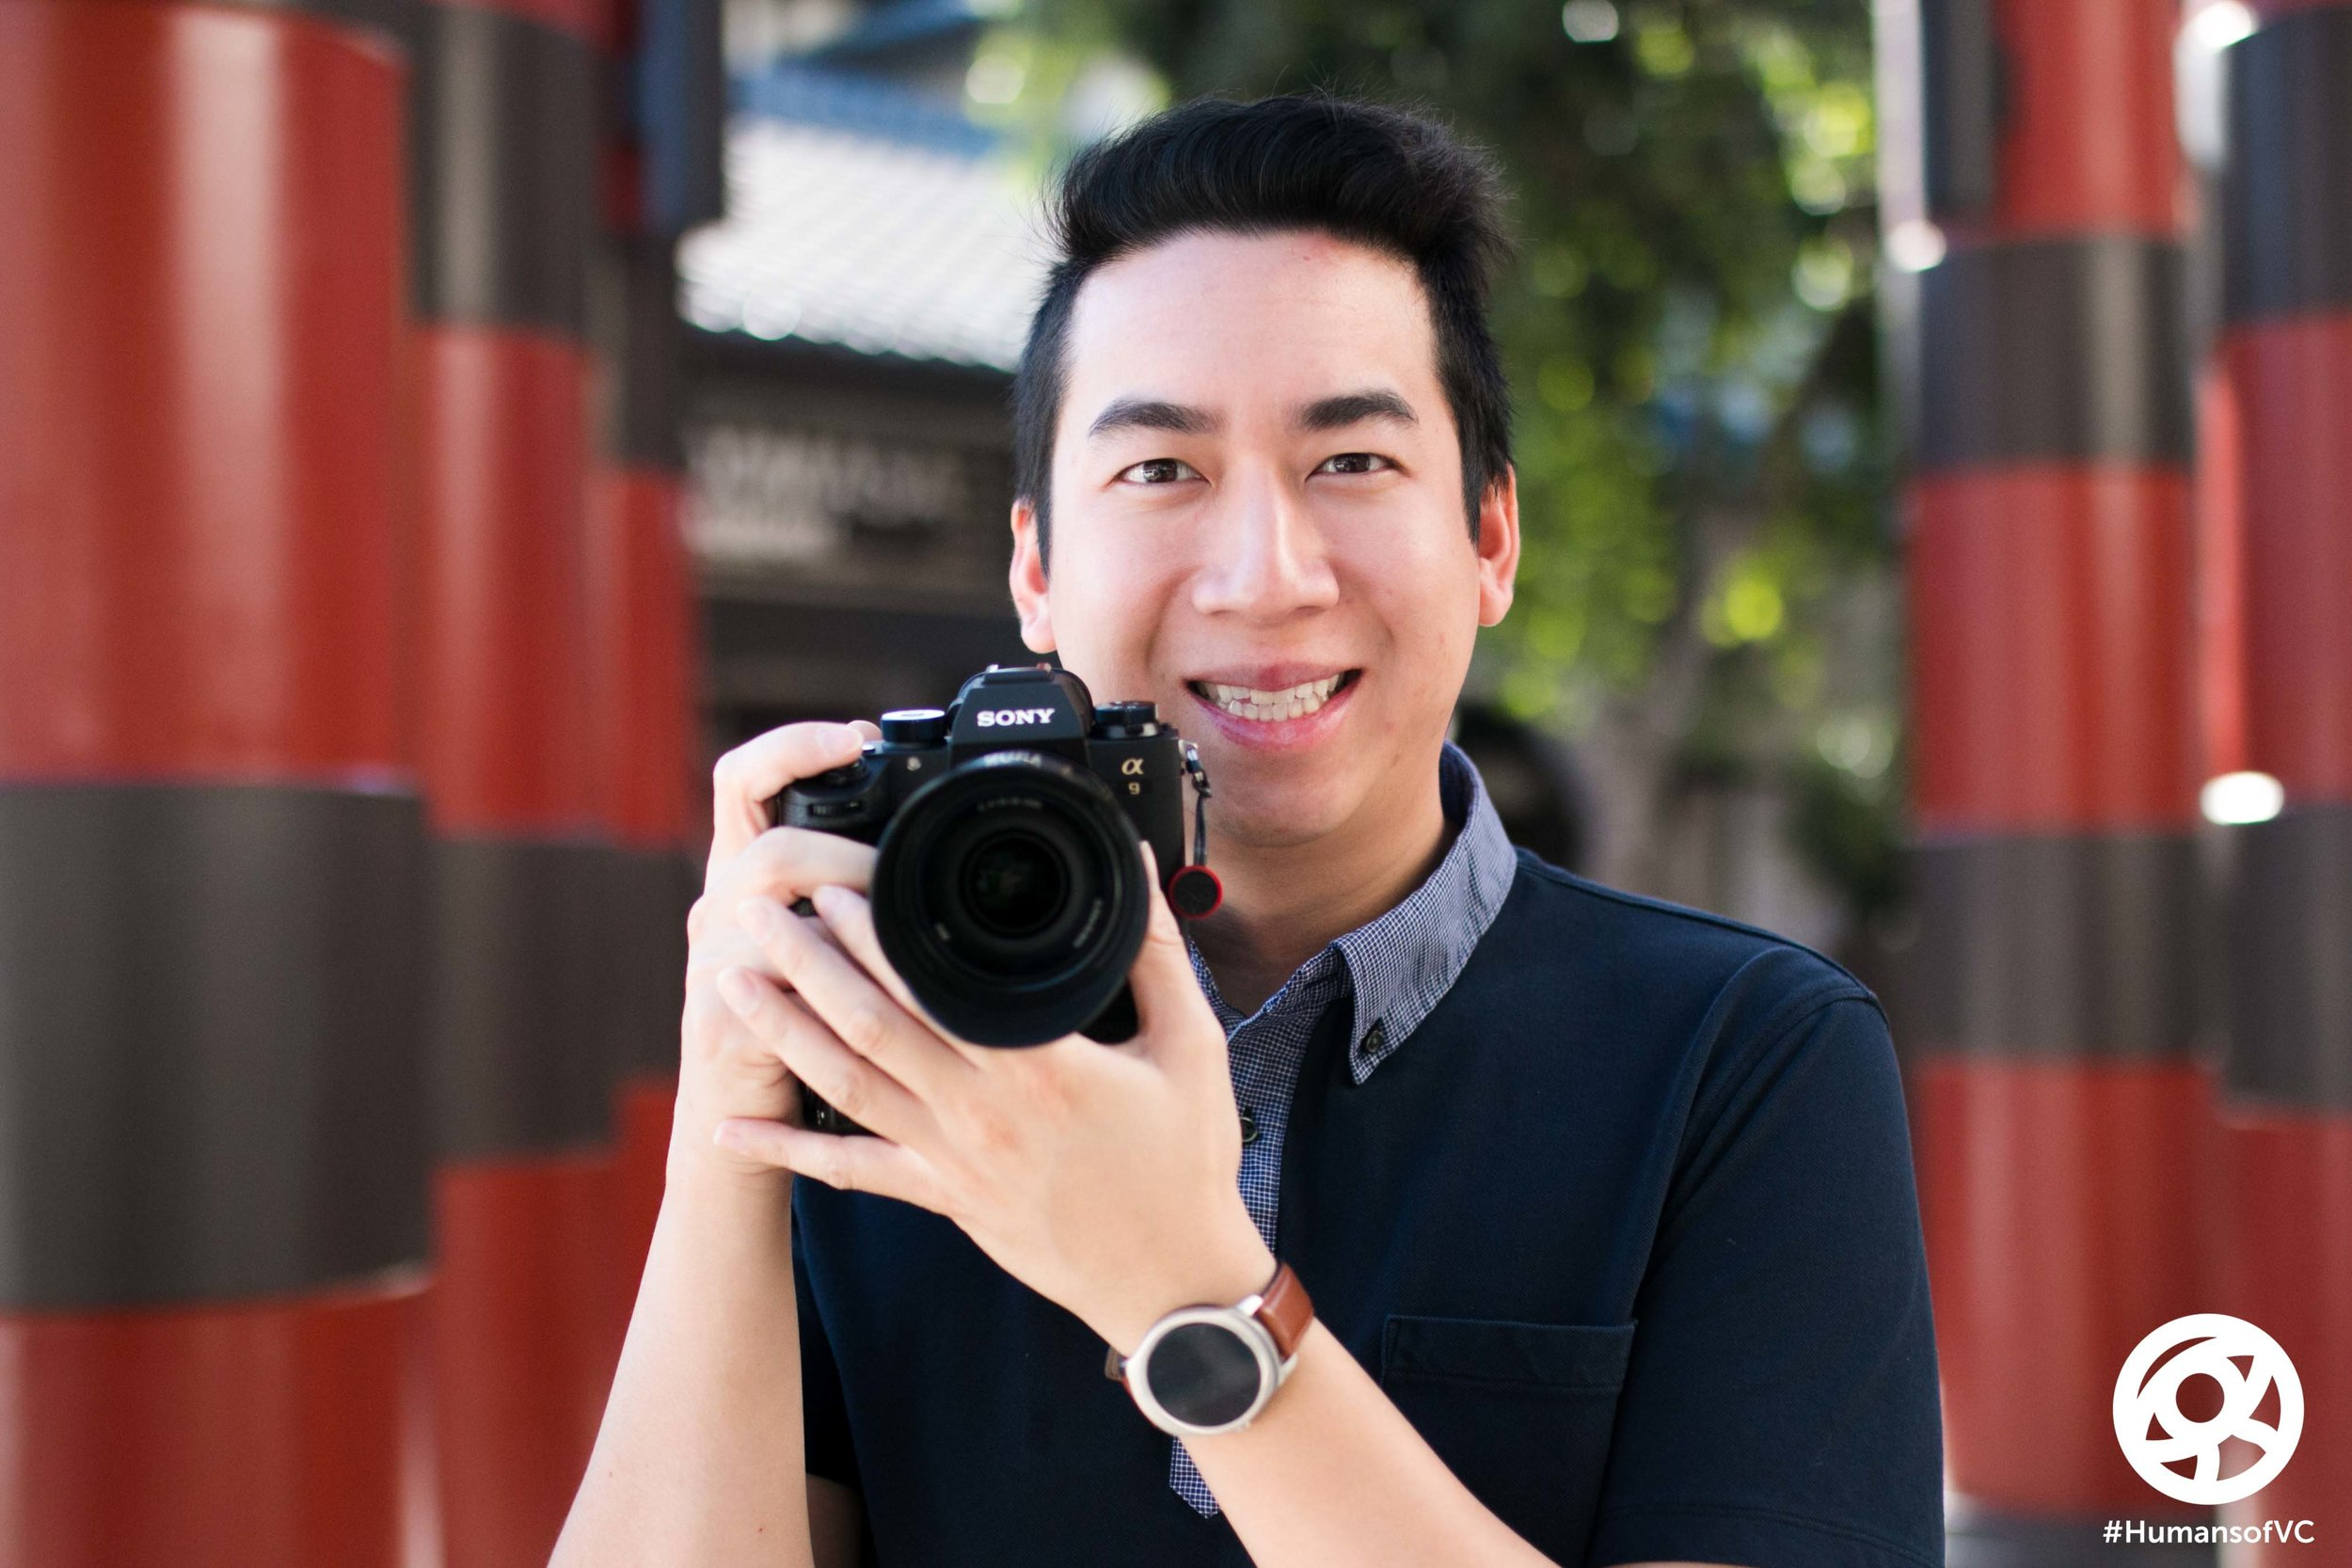 Steven Lam, VC Volunteer/Photographer